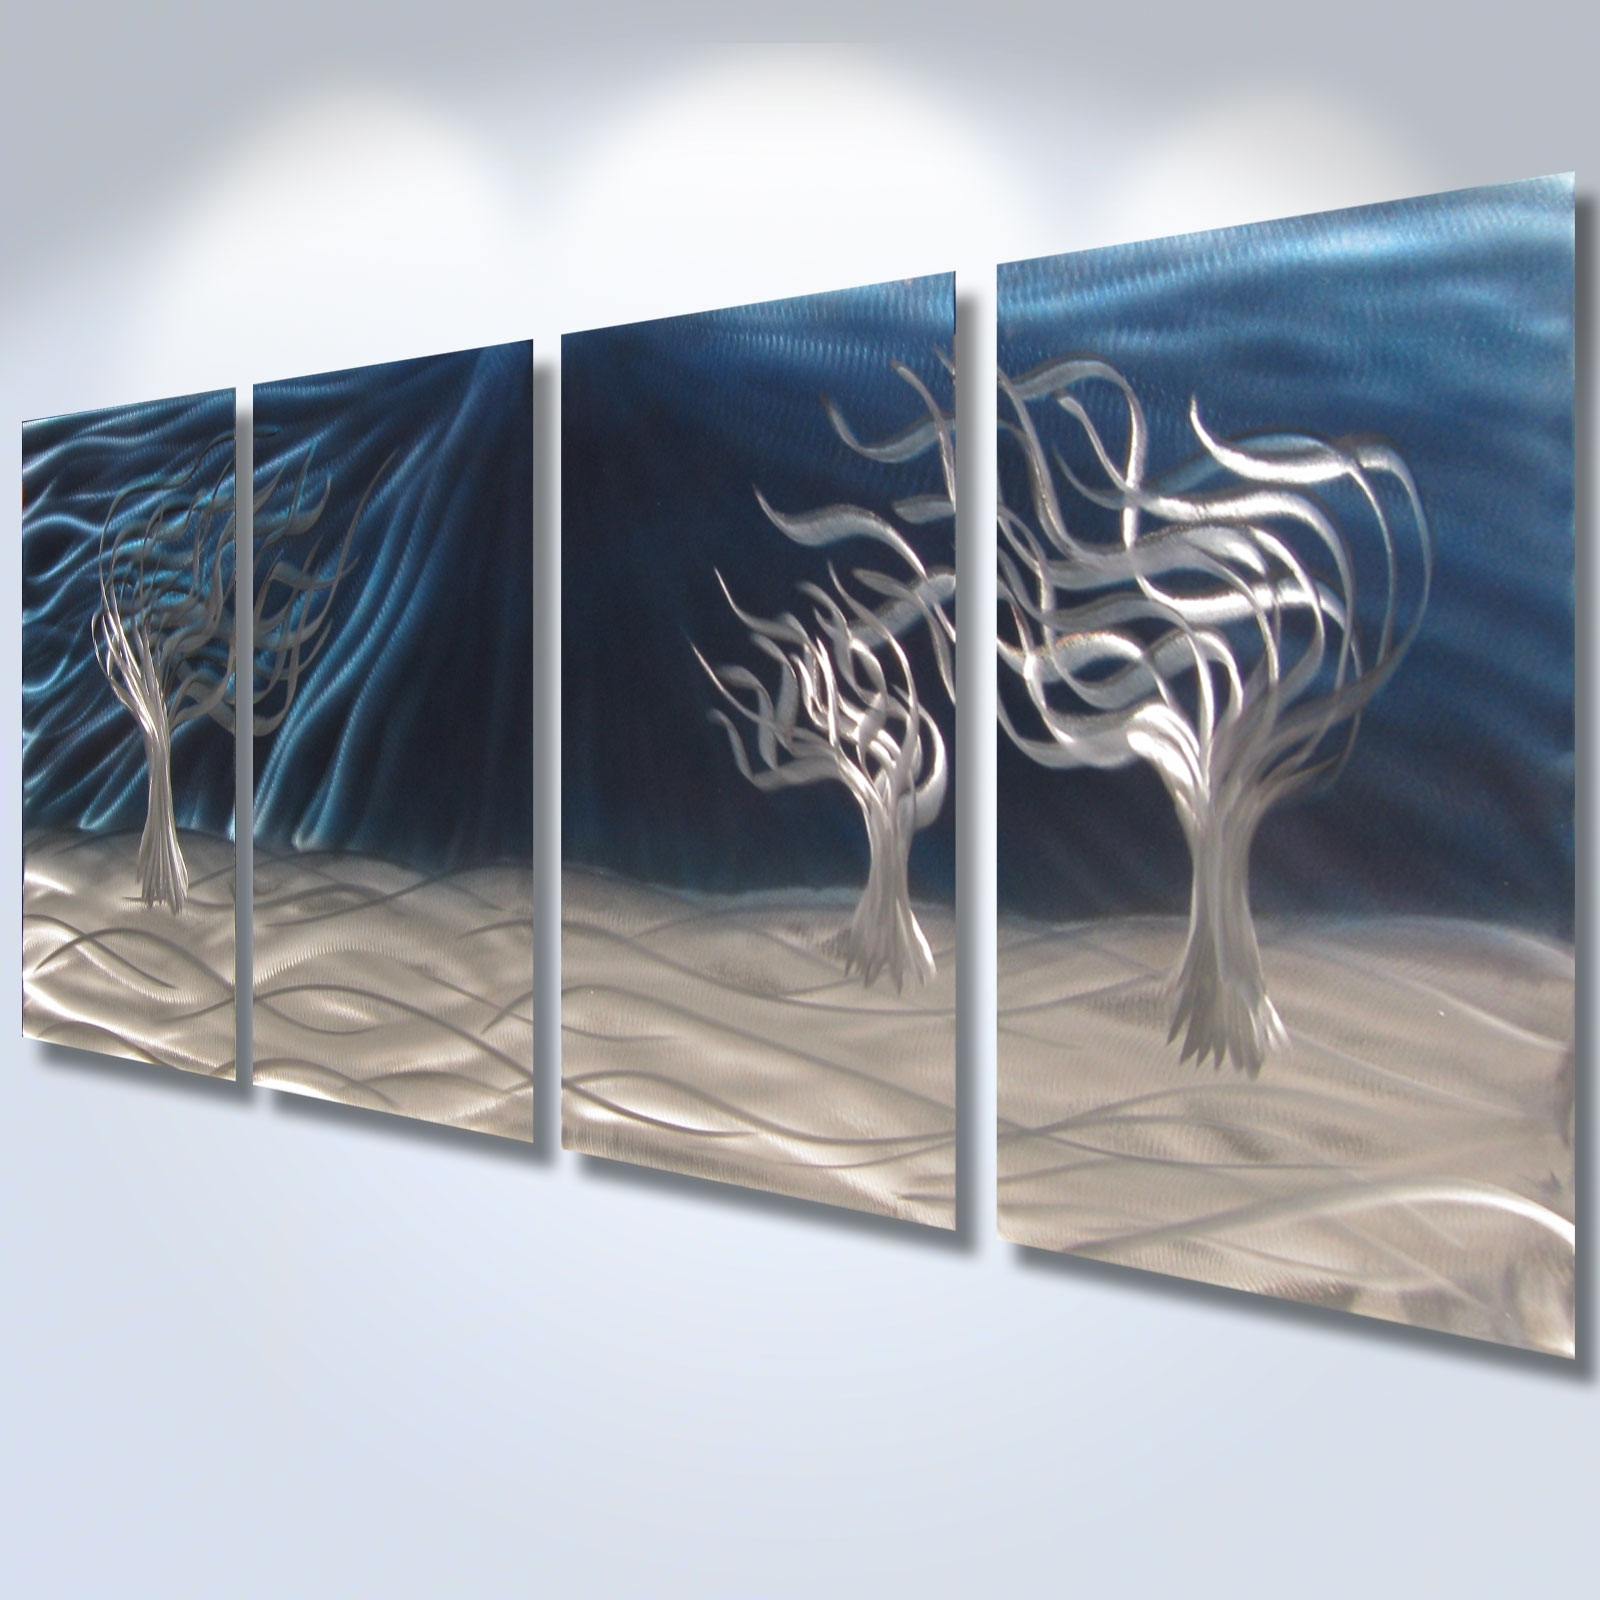 3 Trees Blue – Abstract Metal Wall Art Contemporary Modern Decor Within 2018 Abstract Metal Wall Art With Clock (View 10 of 20)